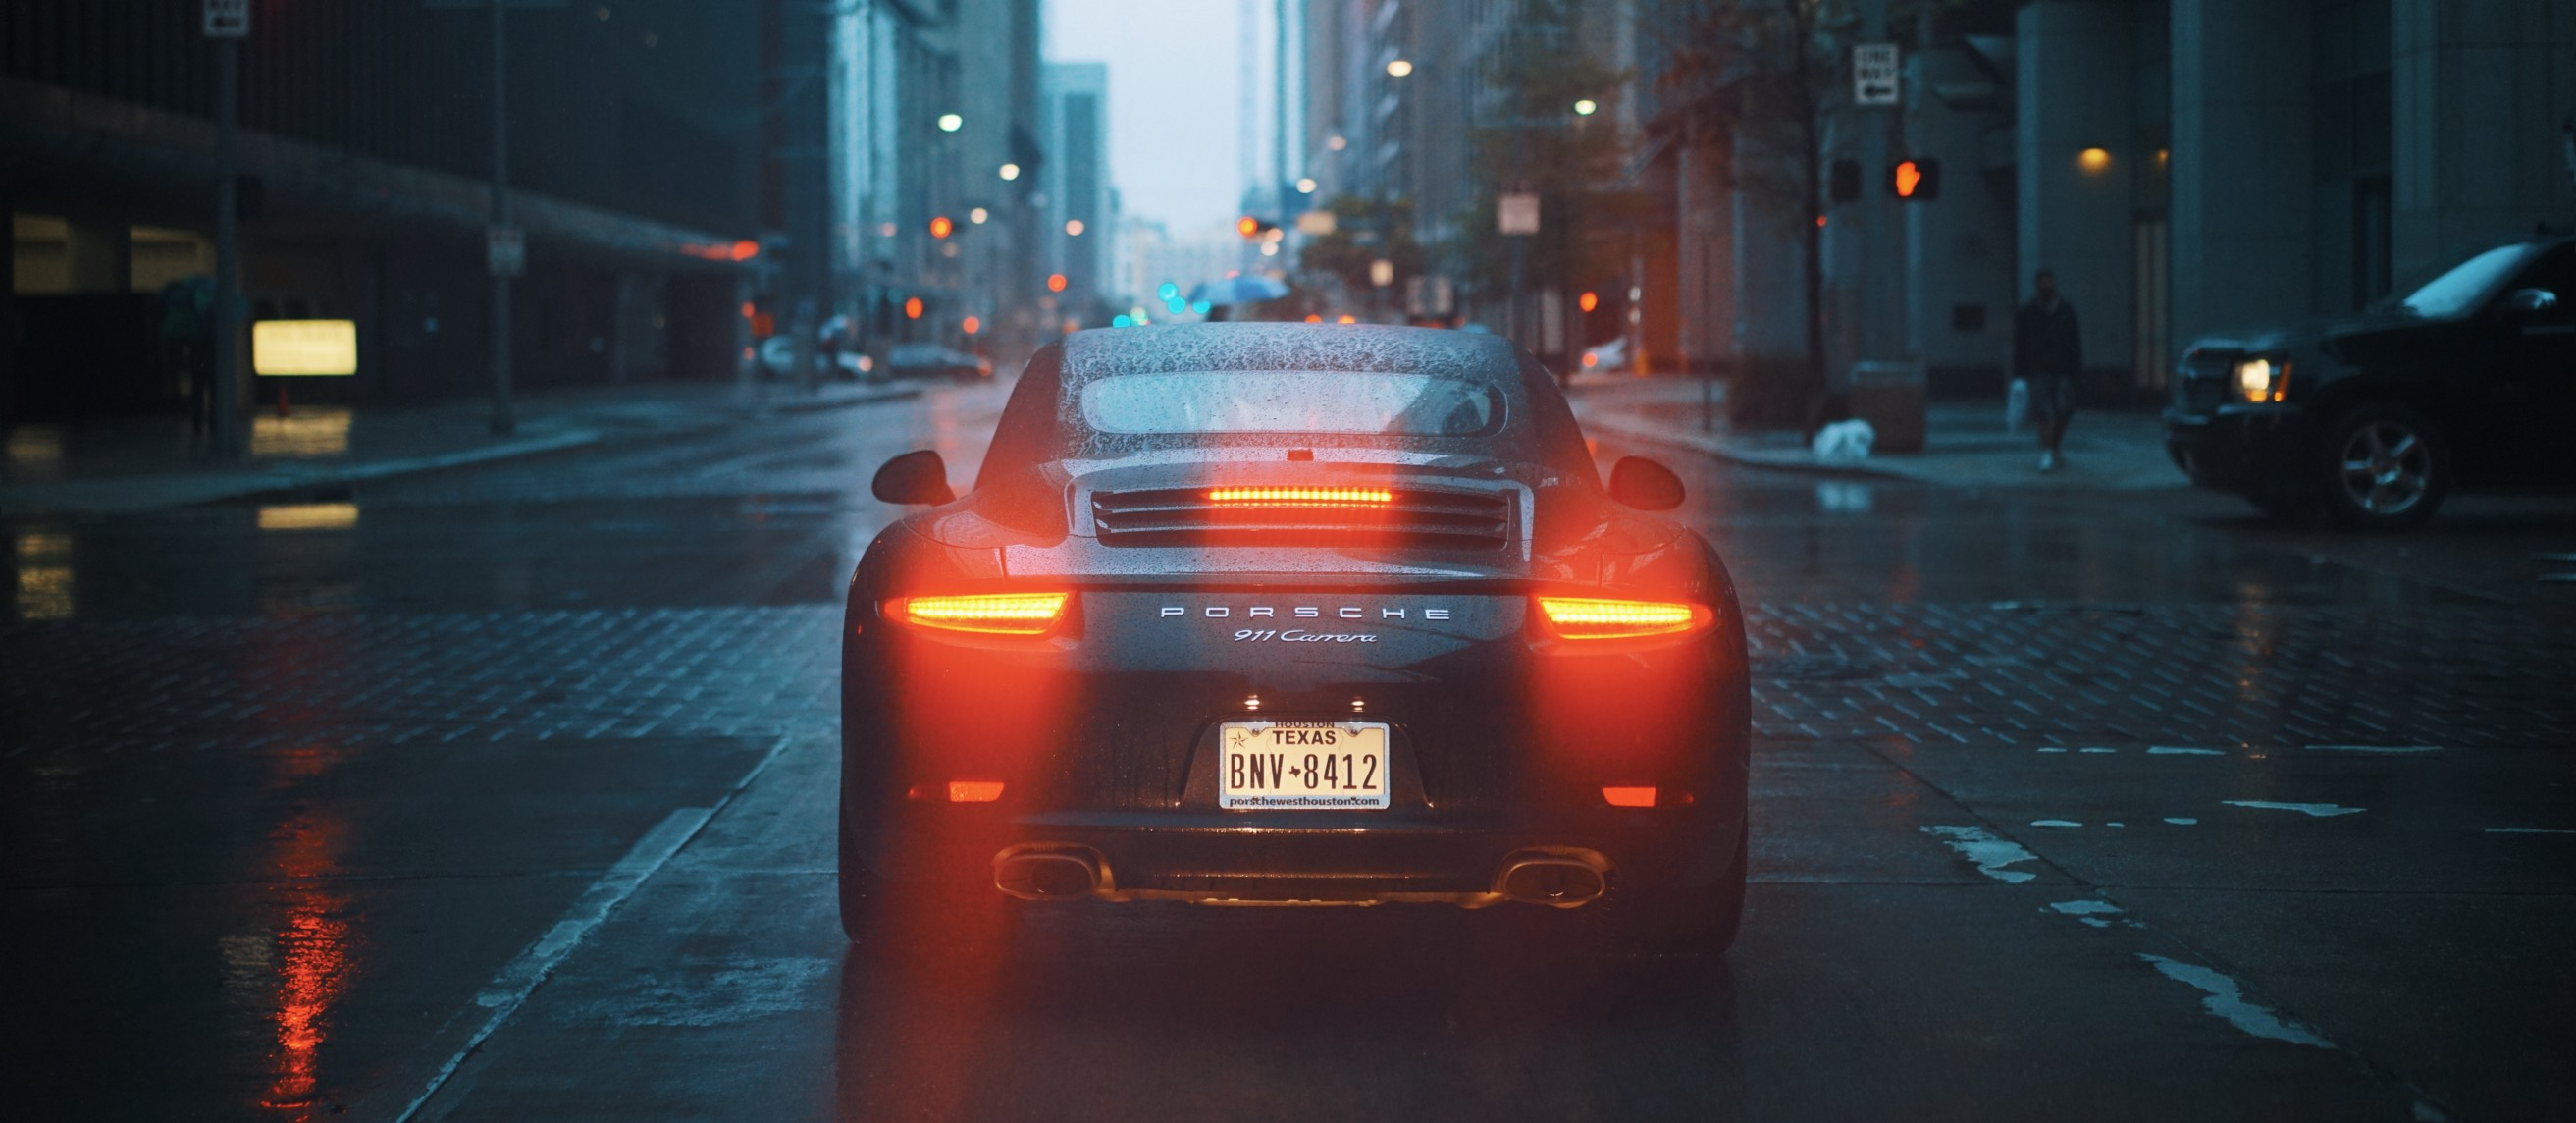 Self-driving car object tracking: Intuition and the math behind